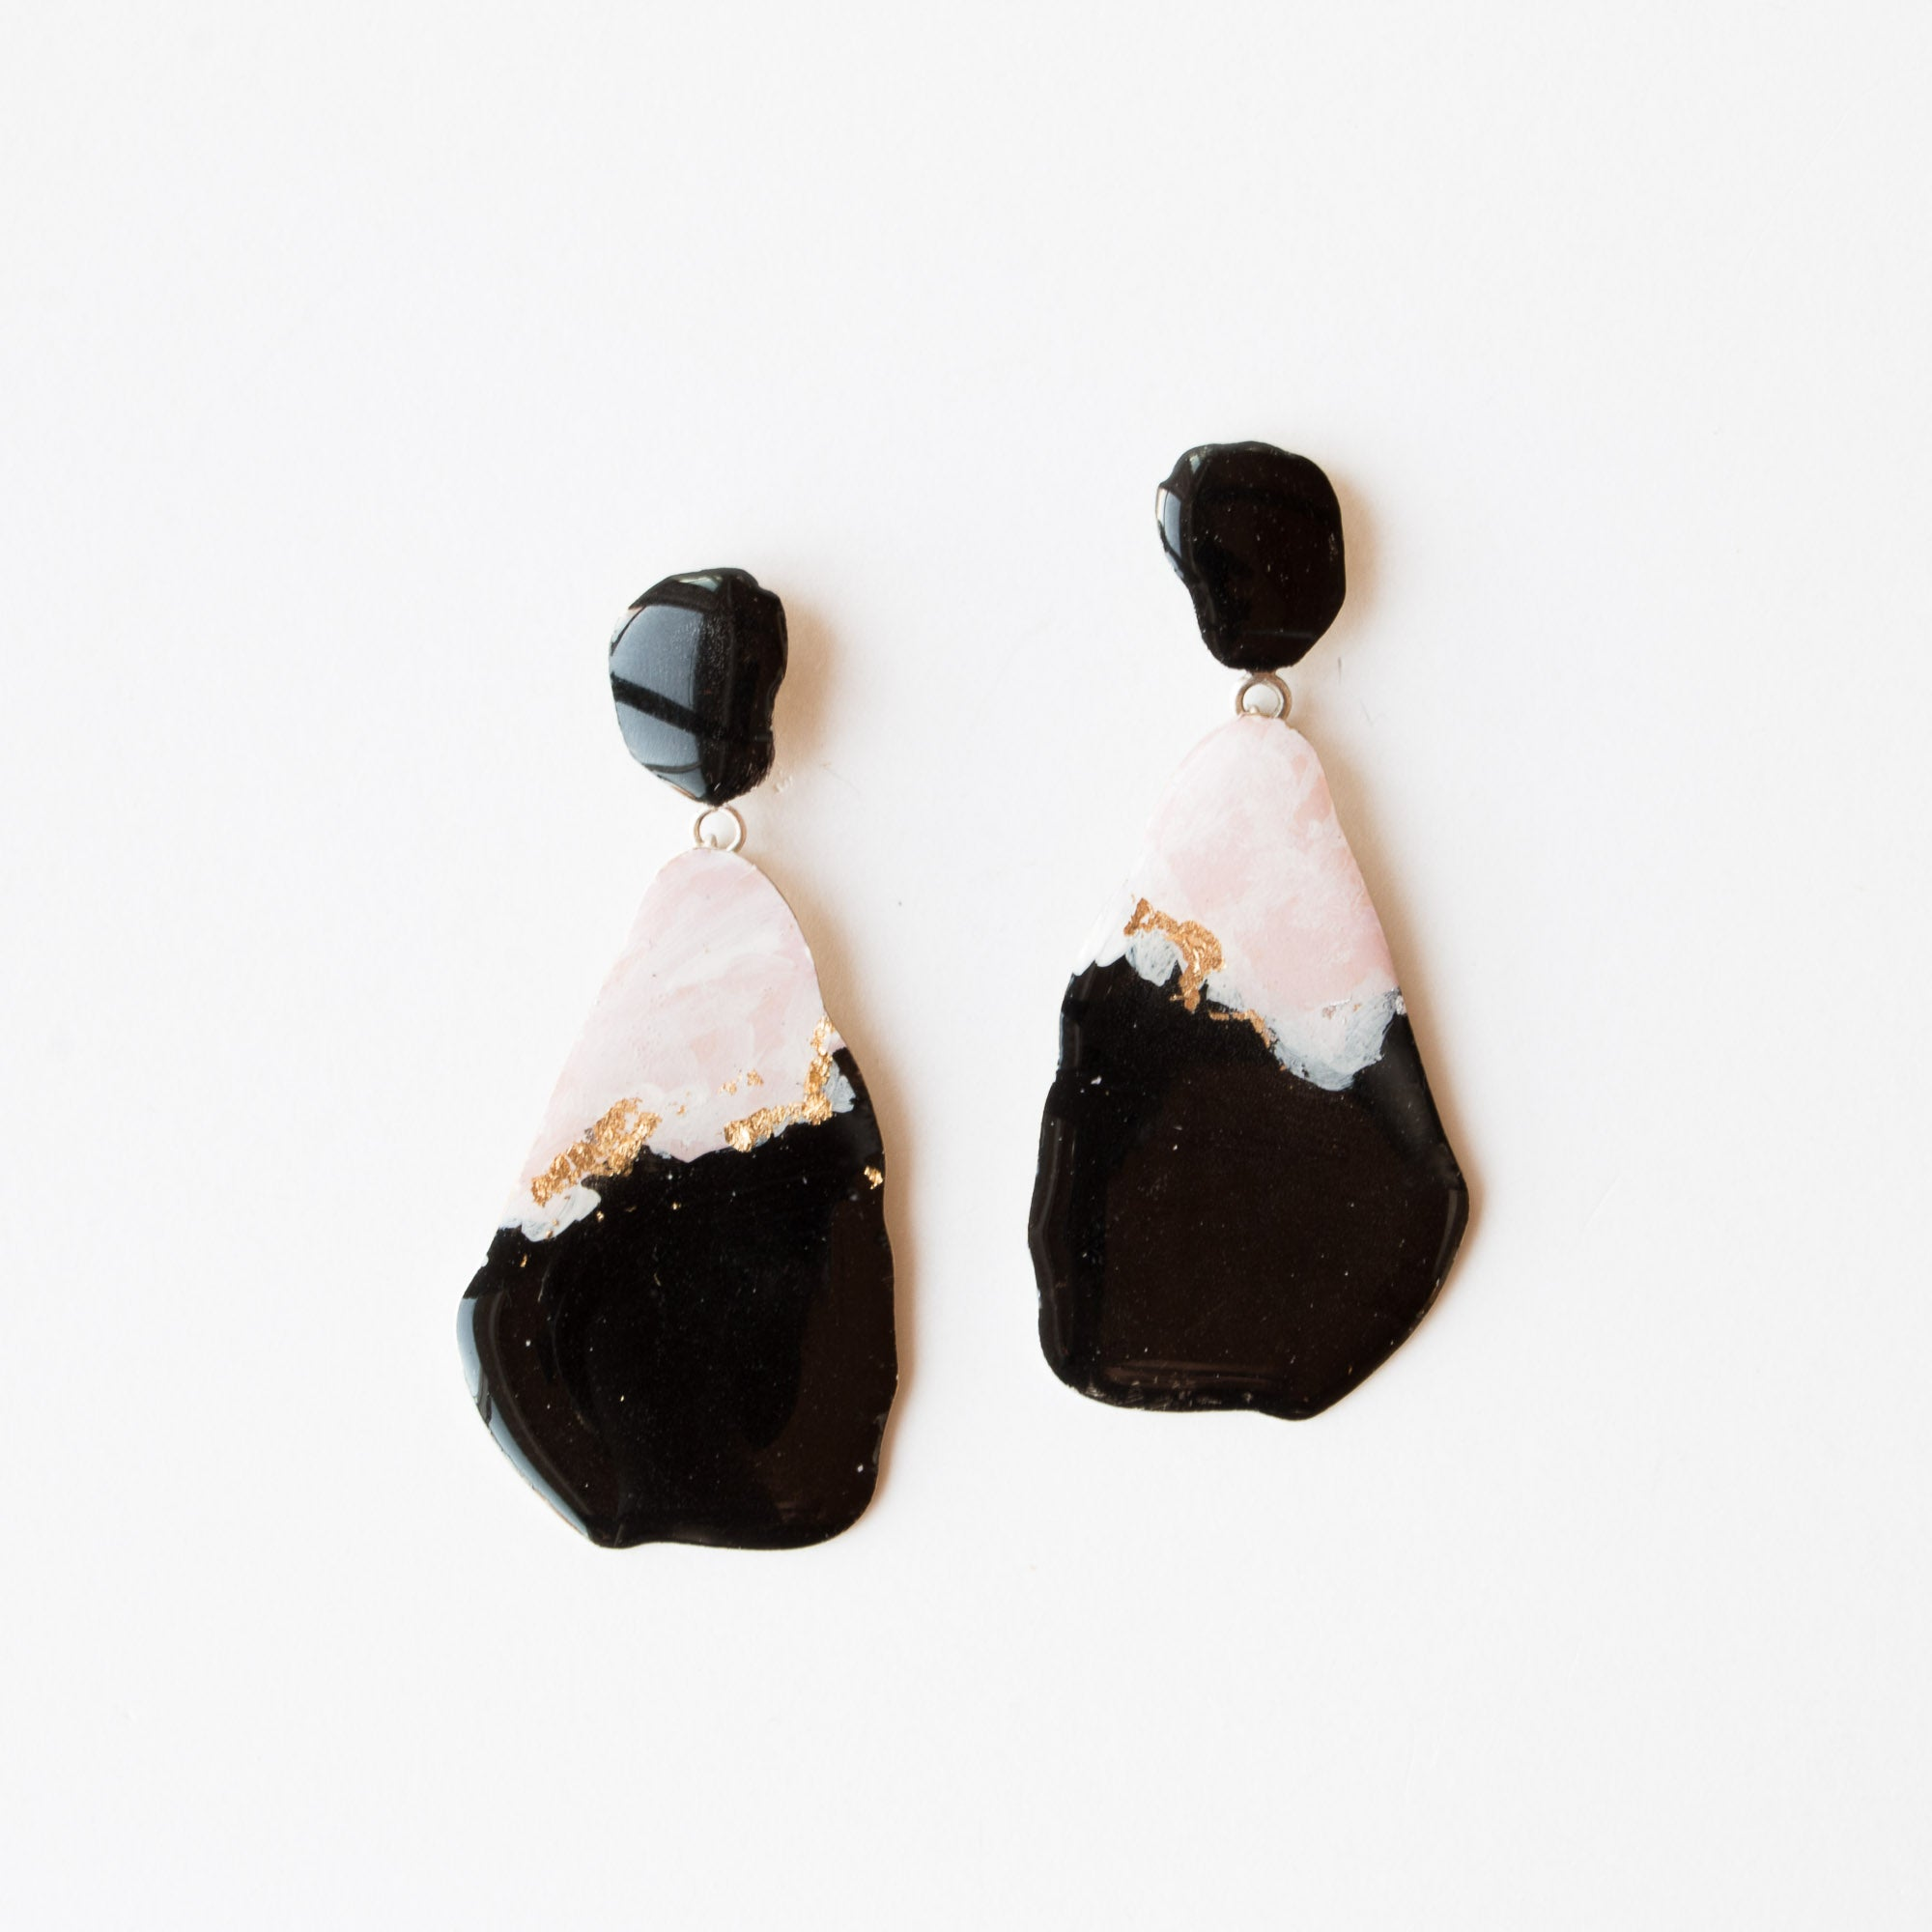 729 - Large Pink, Black & Gold Dangle Earrings - Sold by Chic & Basta